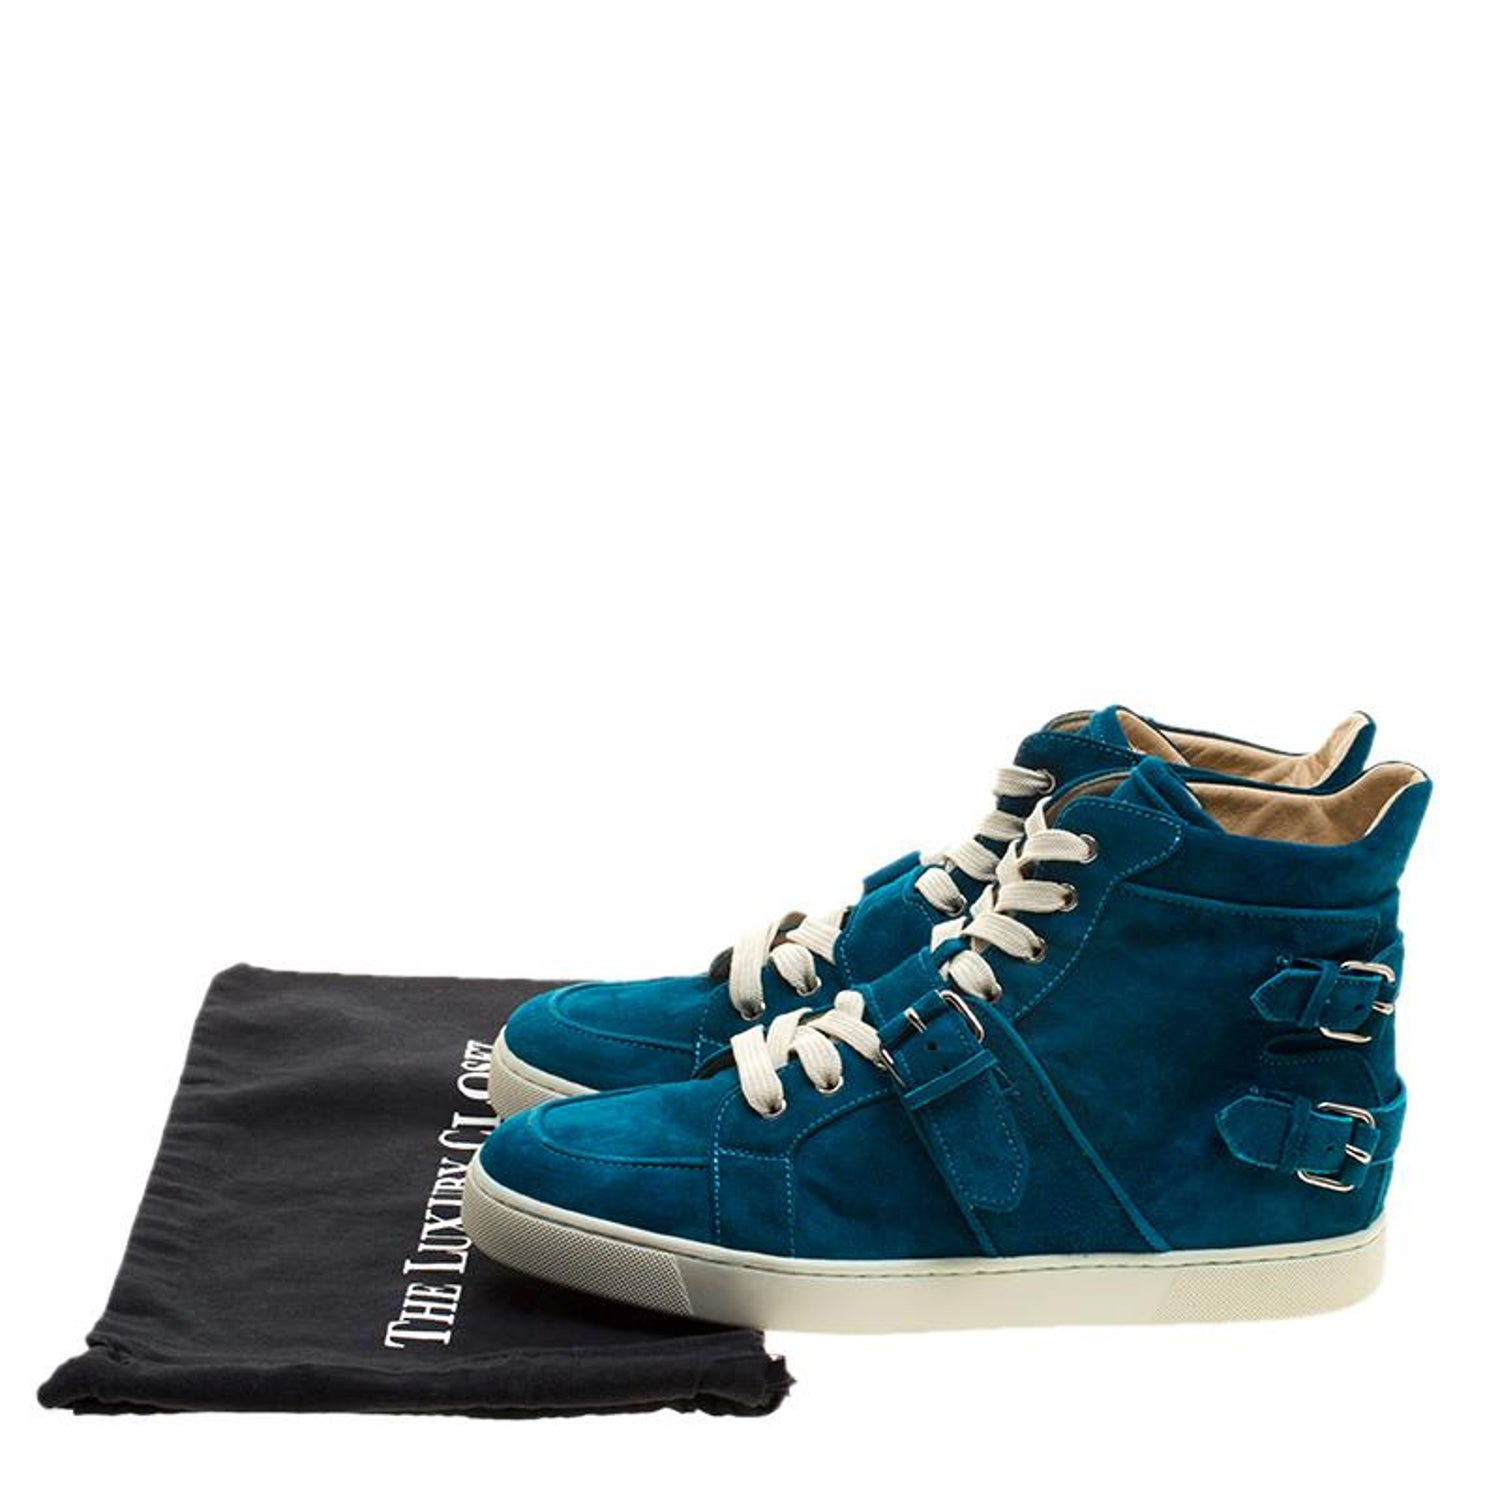 4a67202b19d Christian Louboutin Blue Suede High Top Sneakers Size 45